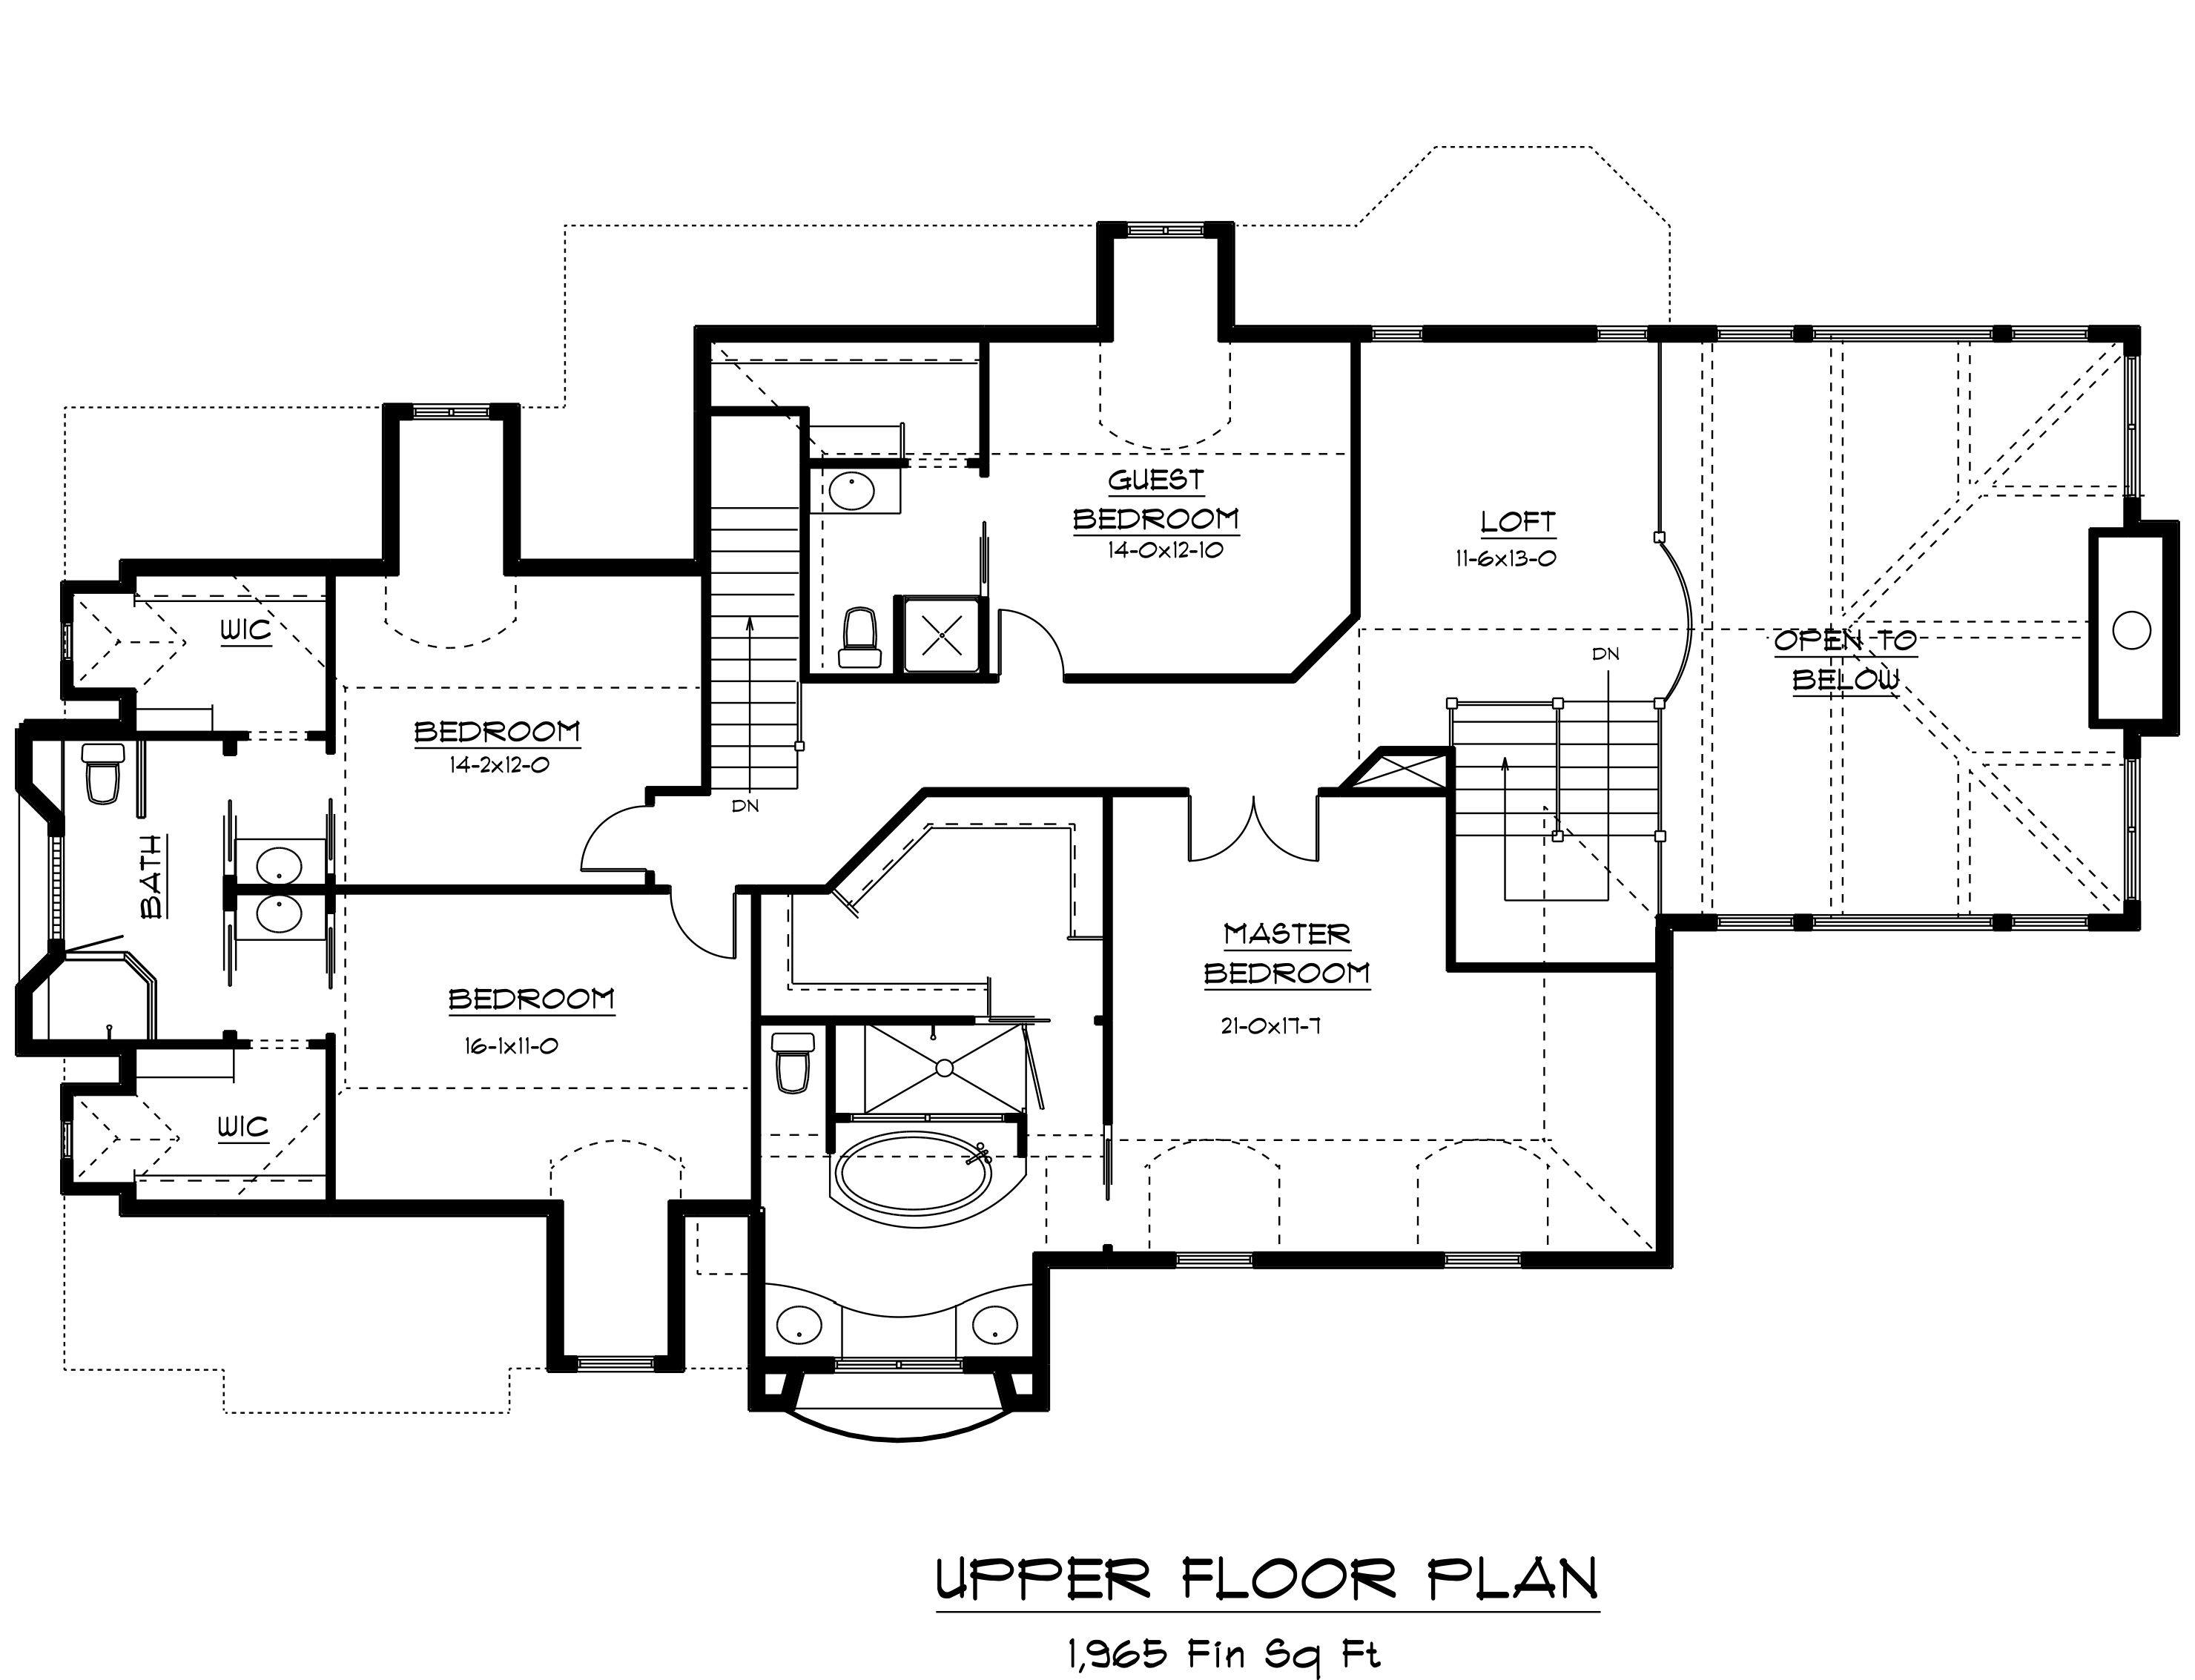 p2-the-cottage-upper-floor-r-c